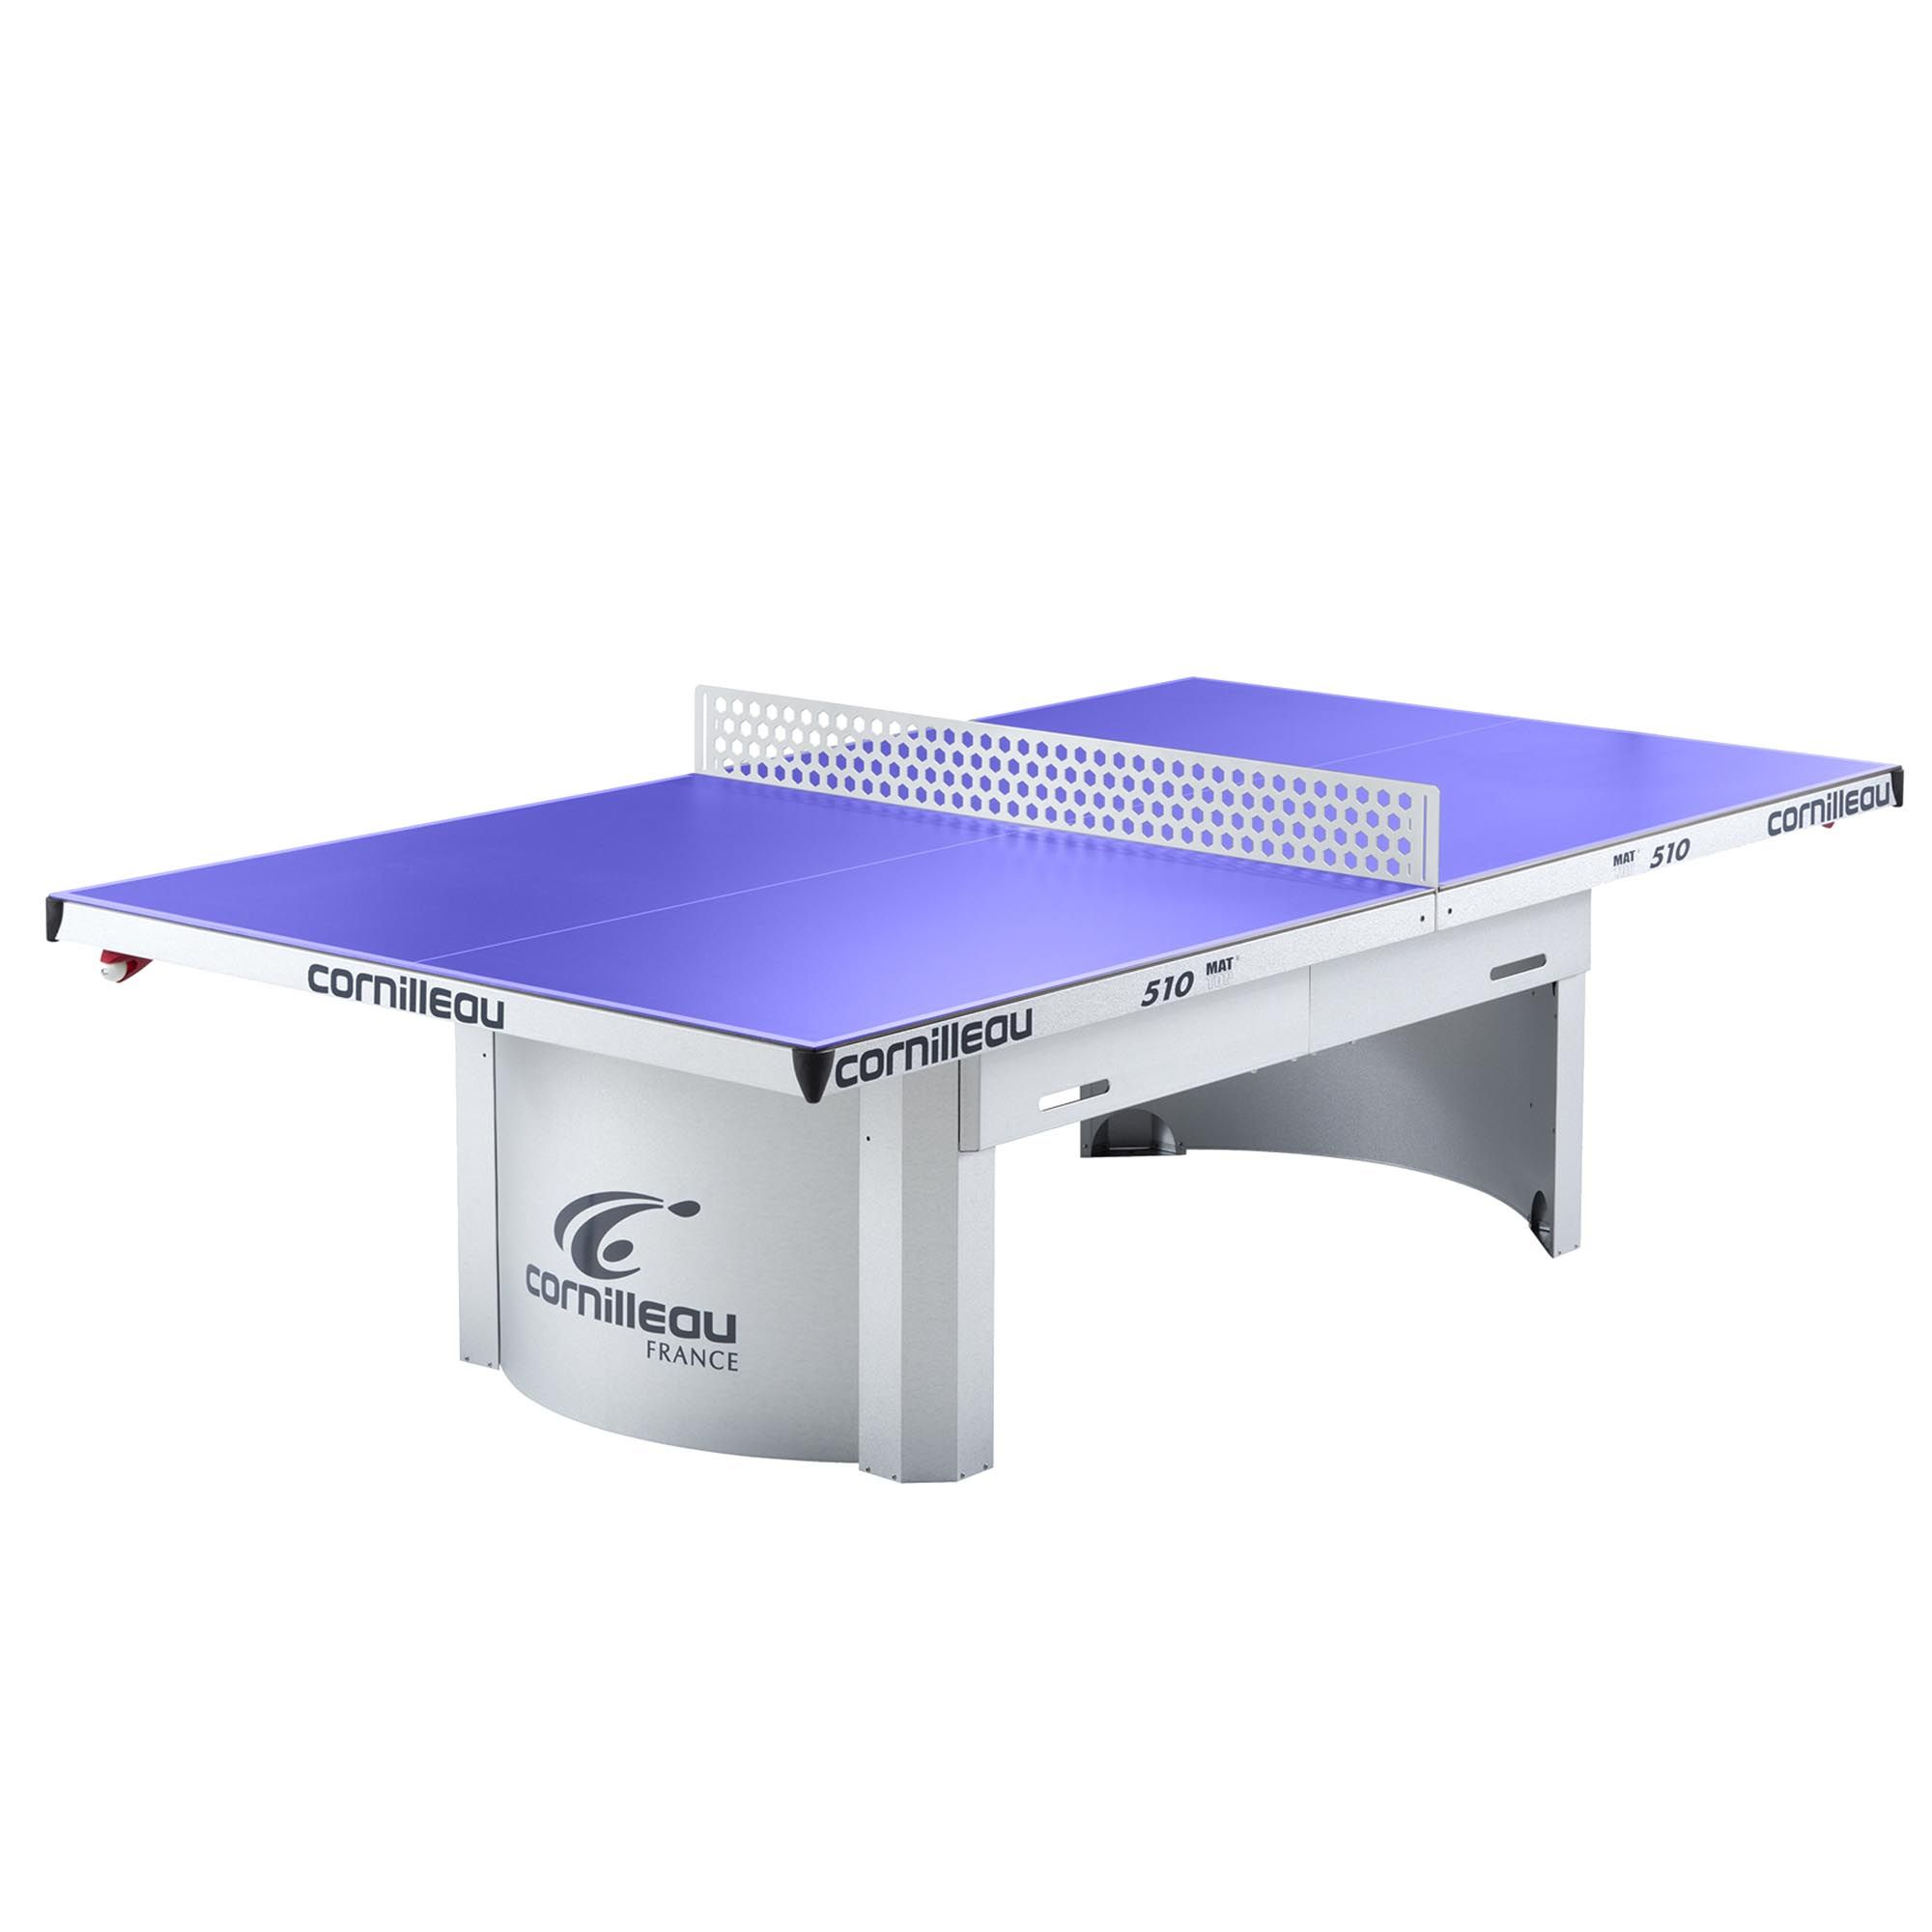 Cornilleau Pro 510 Static Outdoor Table Tennis Table